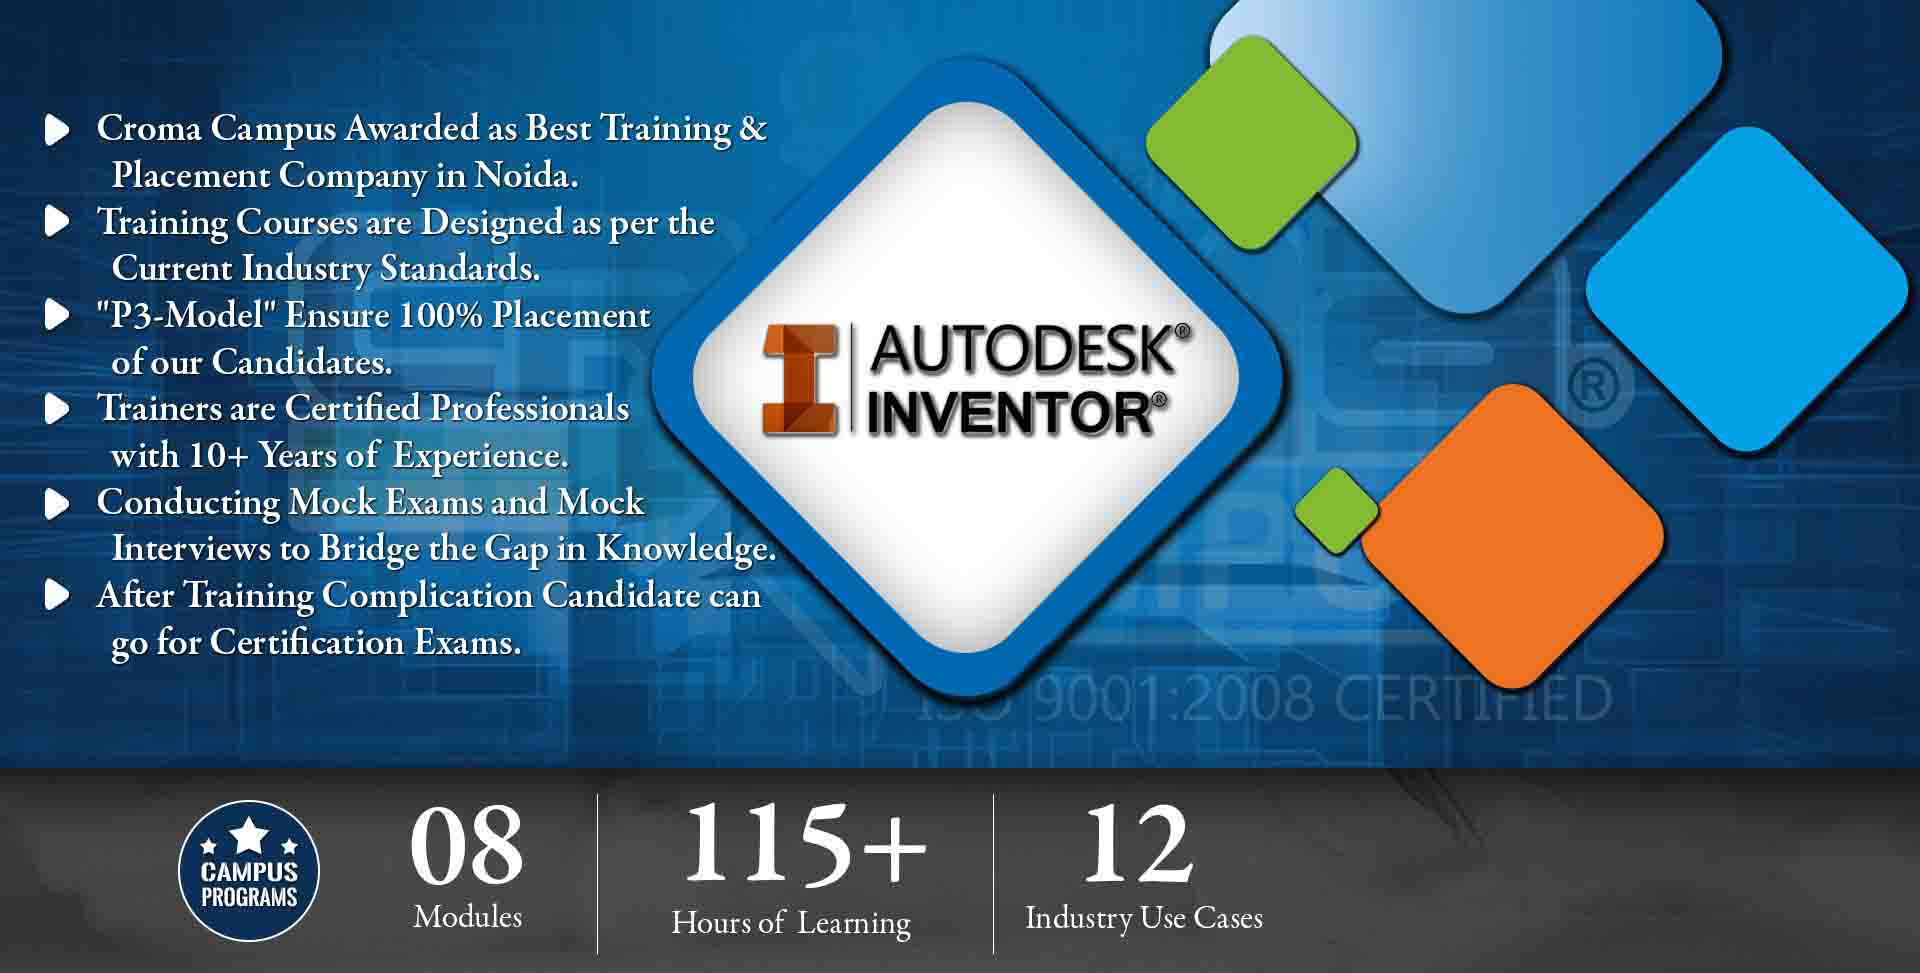 Inventor Training in Delhi NCR- Croma Campus